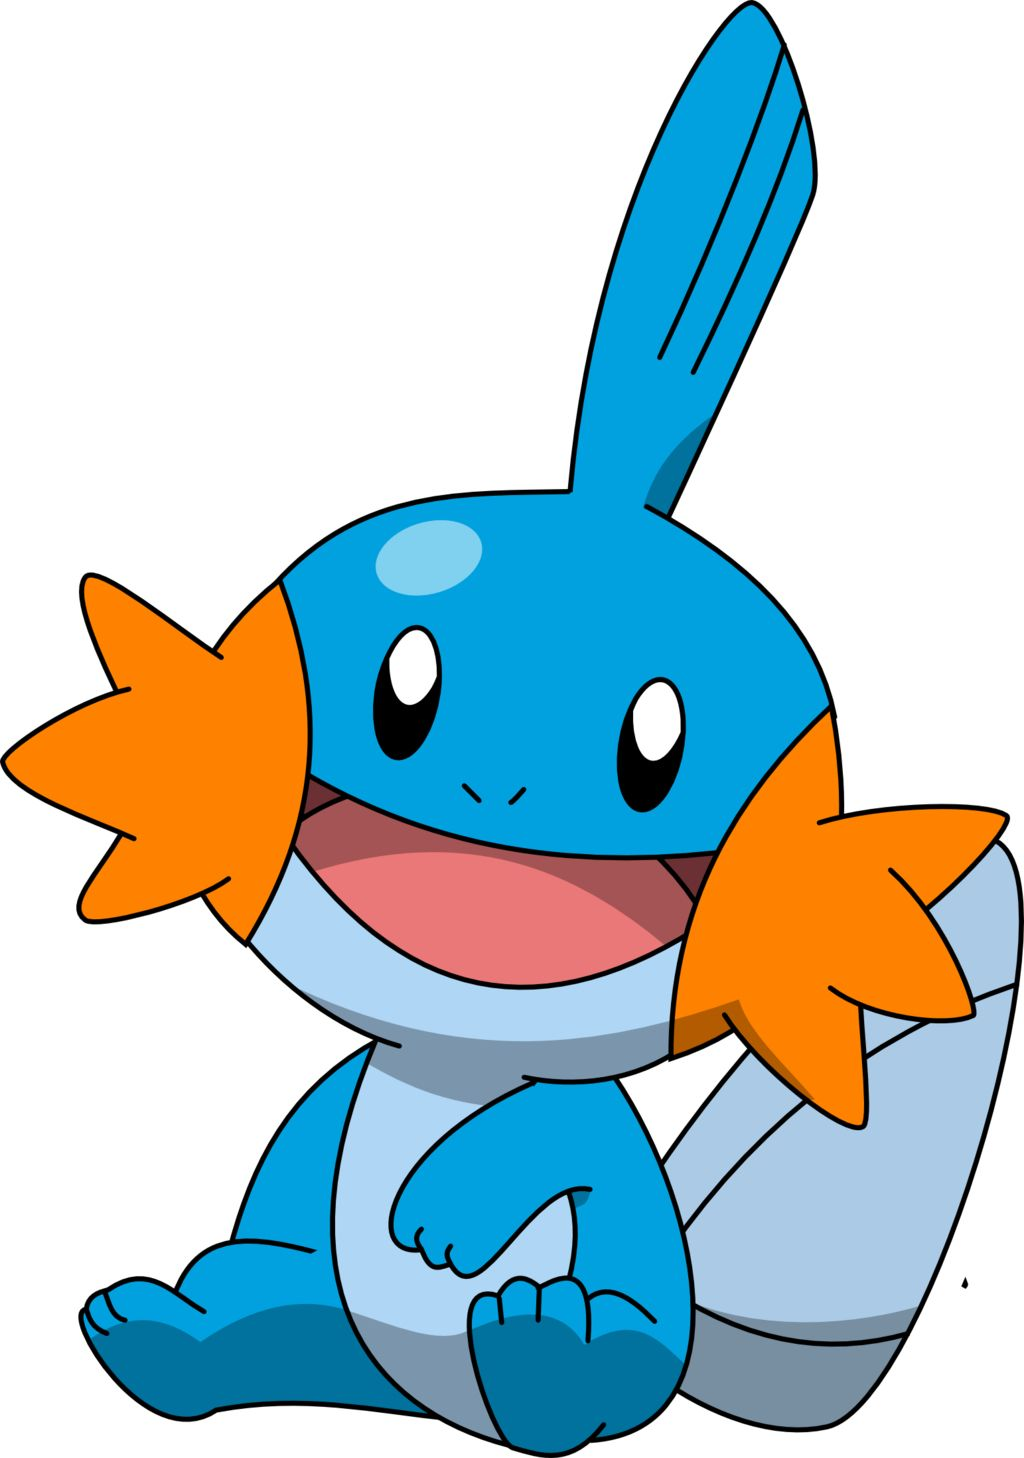 Mudkip With Images Pokemon Mudkip